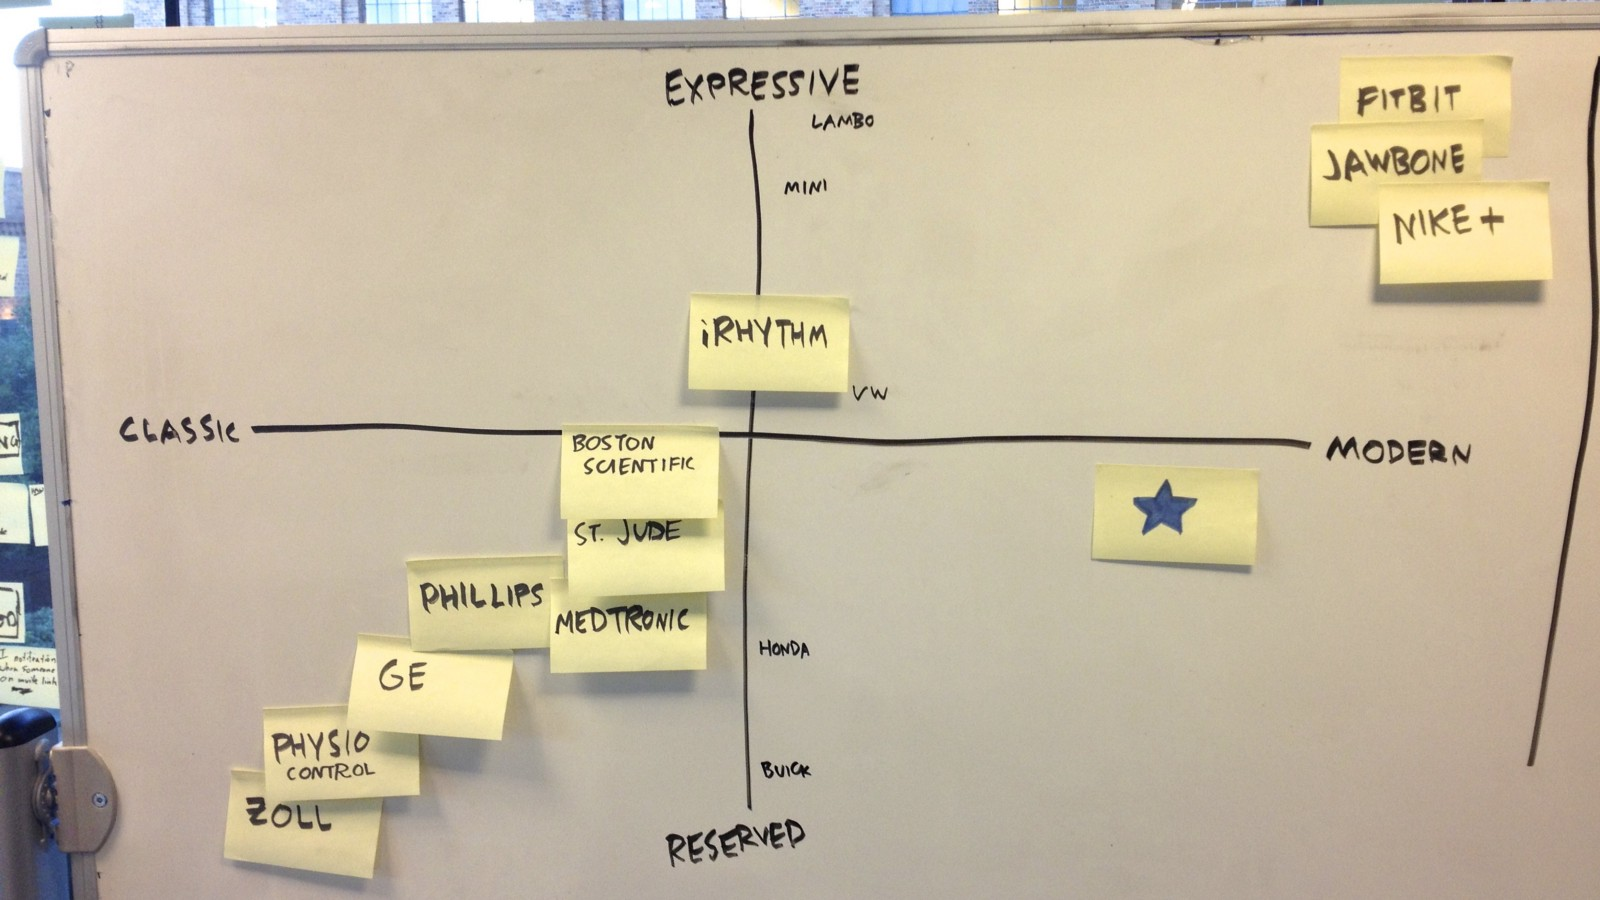 The Three Hour Brand Sprint Gv Library Here Is One Diagram Not From Google But My Own This Last Exercise A Simple 2x2 Matrix I Know Consultant Nirvana Actually Dont Think Even Need To Explain So Lets Dive Right In